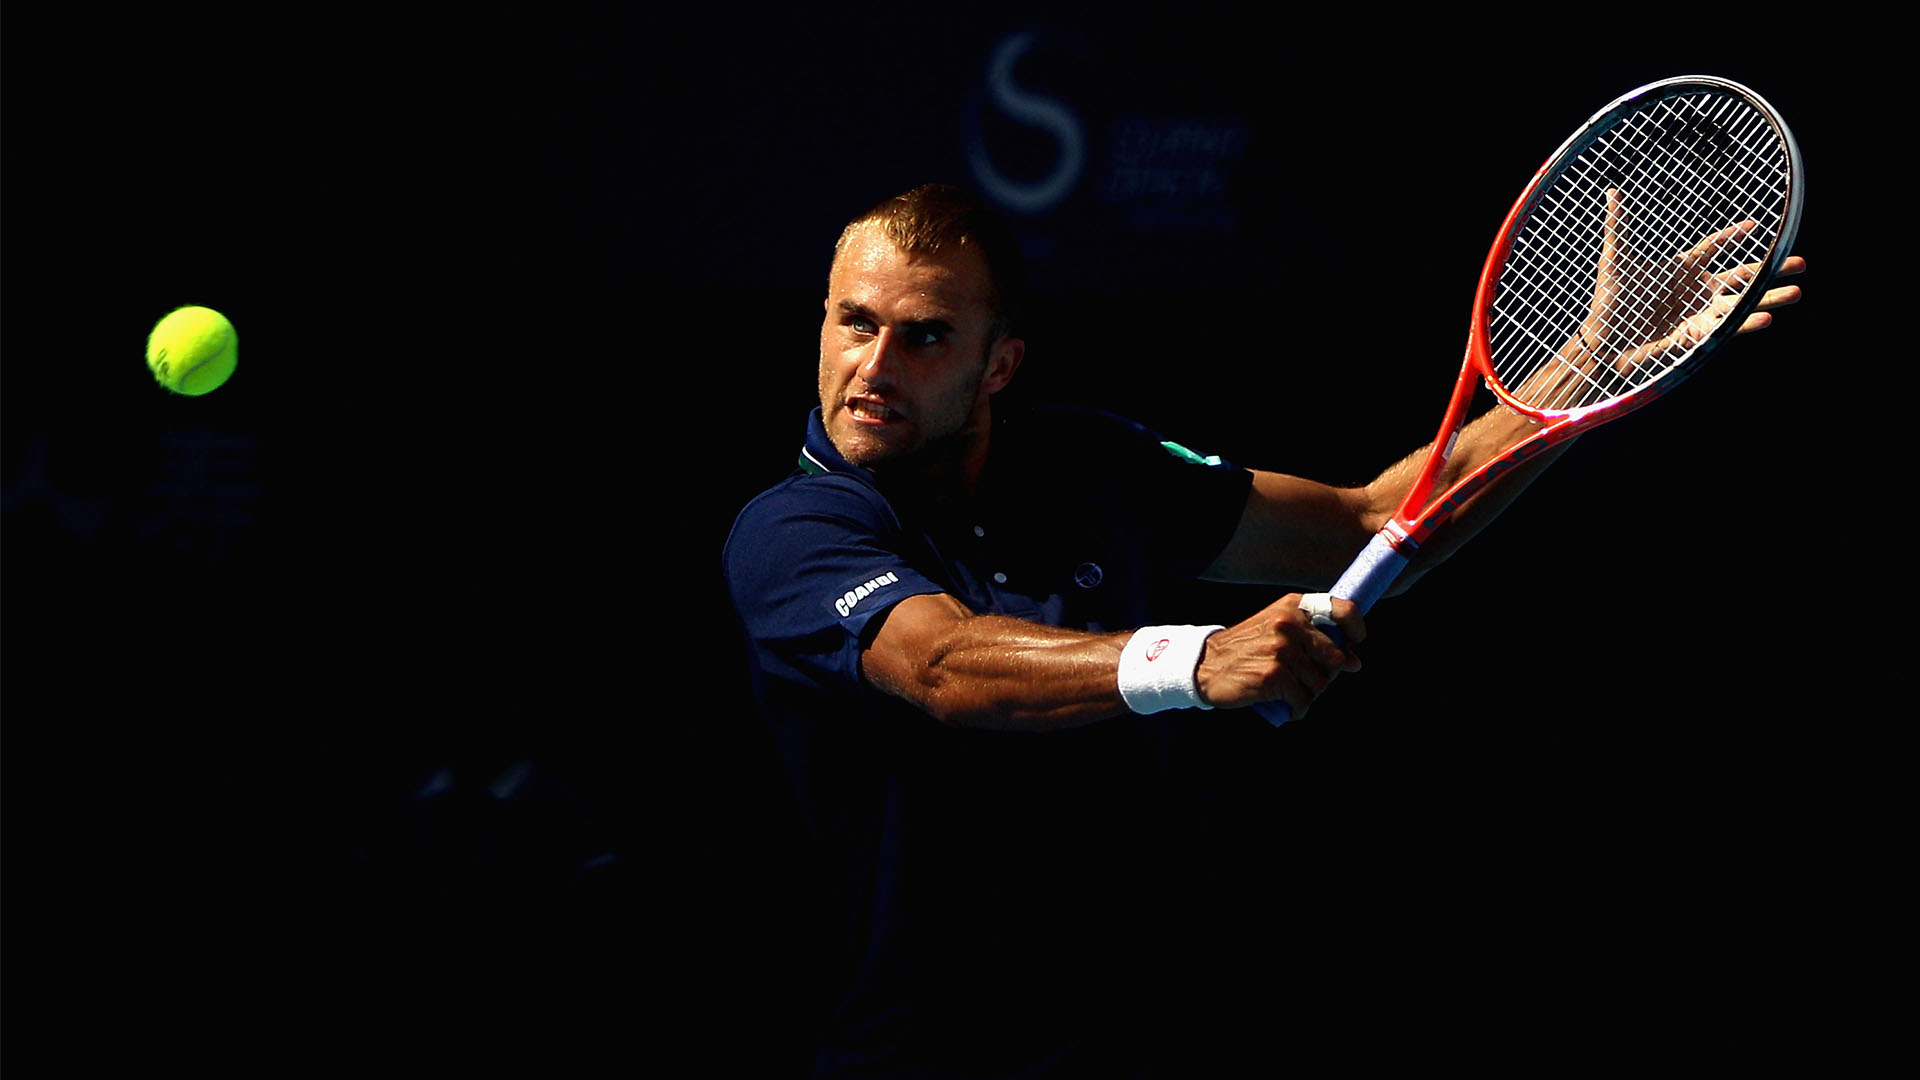 Marius Copil during the tennis tournament from China, Beijing